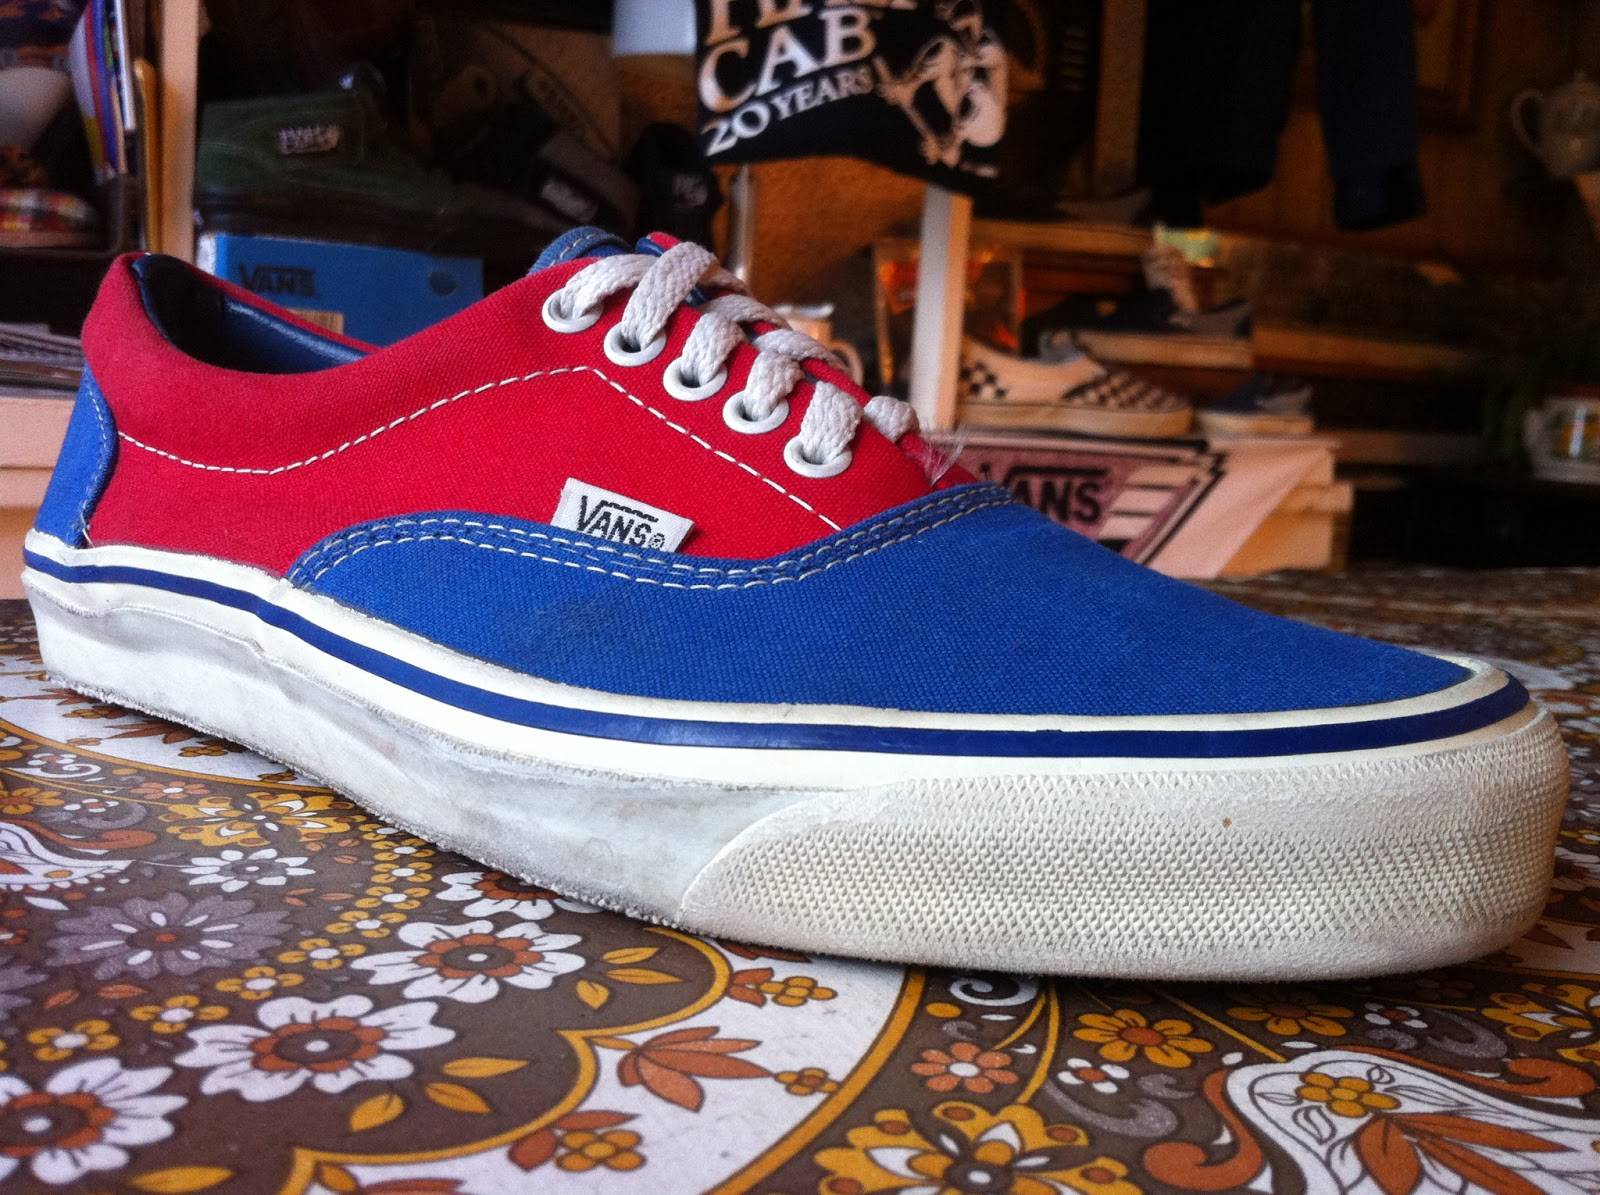 theothersideofthepillow vintage VANS 2tone red  blue